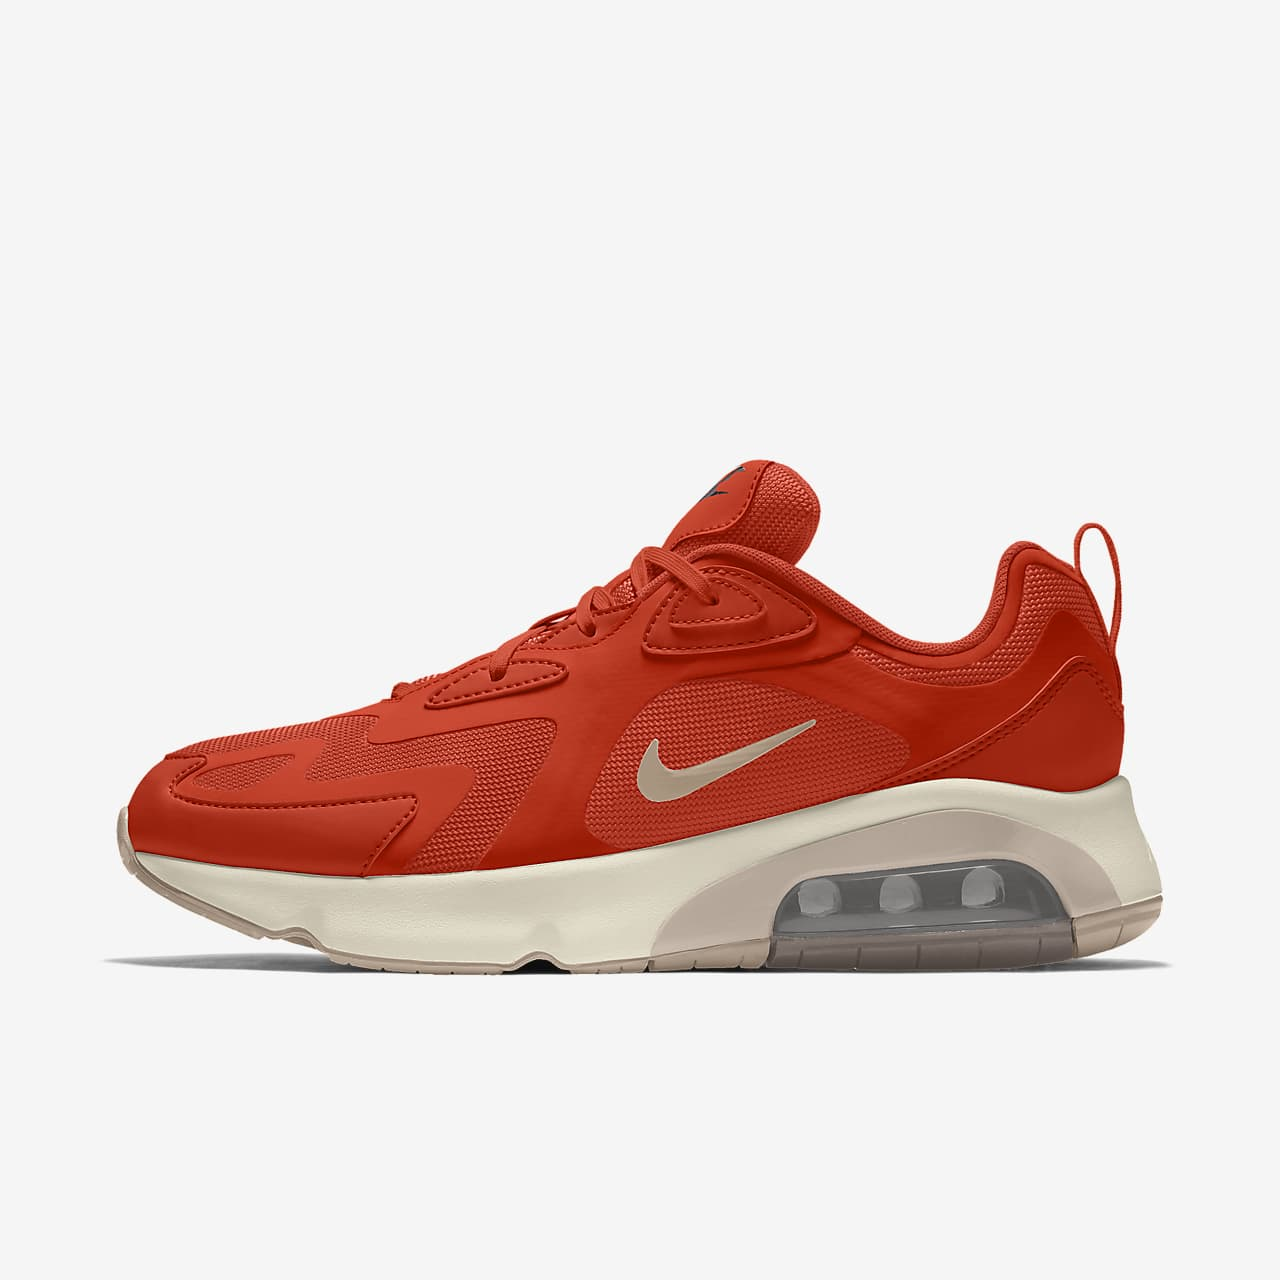 Chaussure personnalisable Nike Air Max 200 By You pour Femme